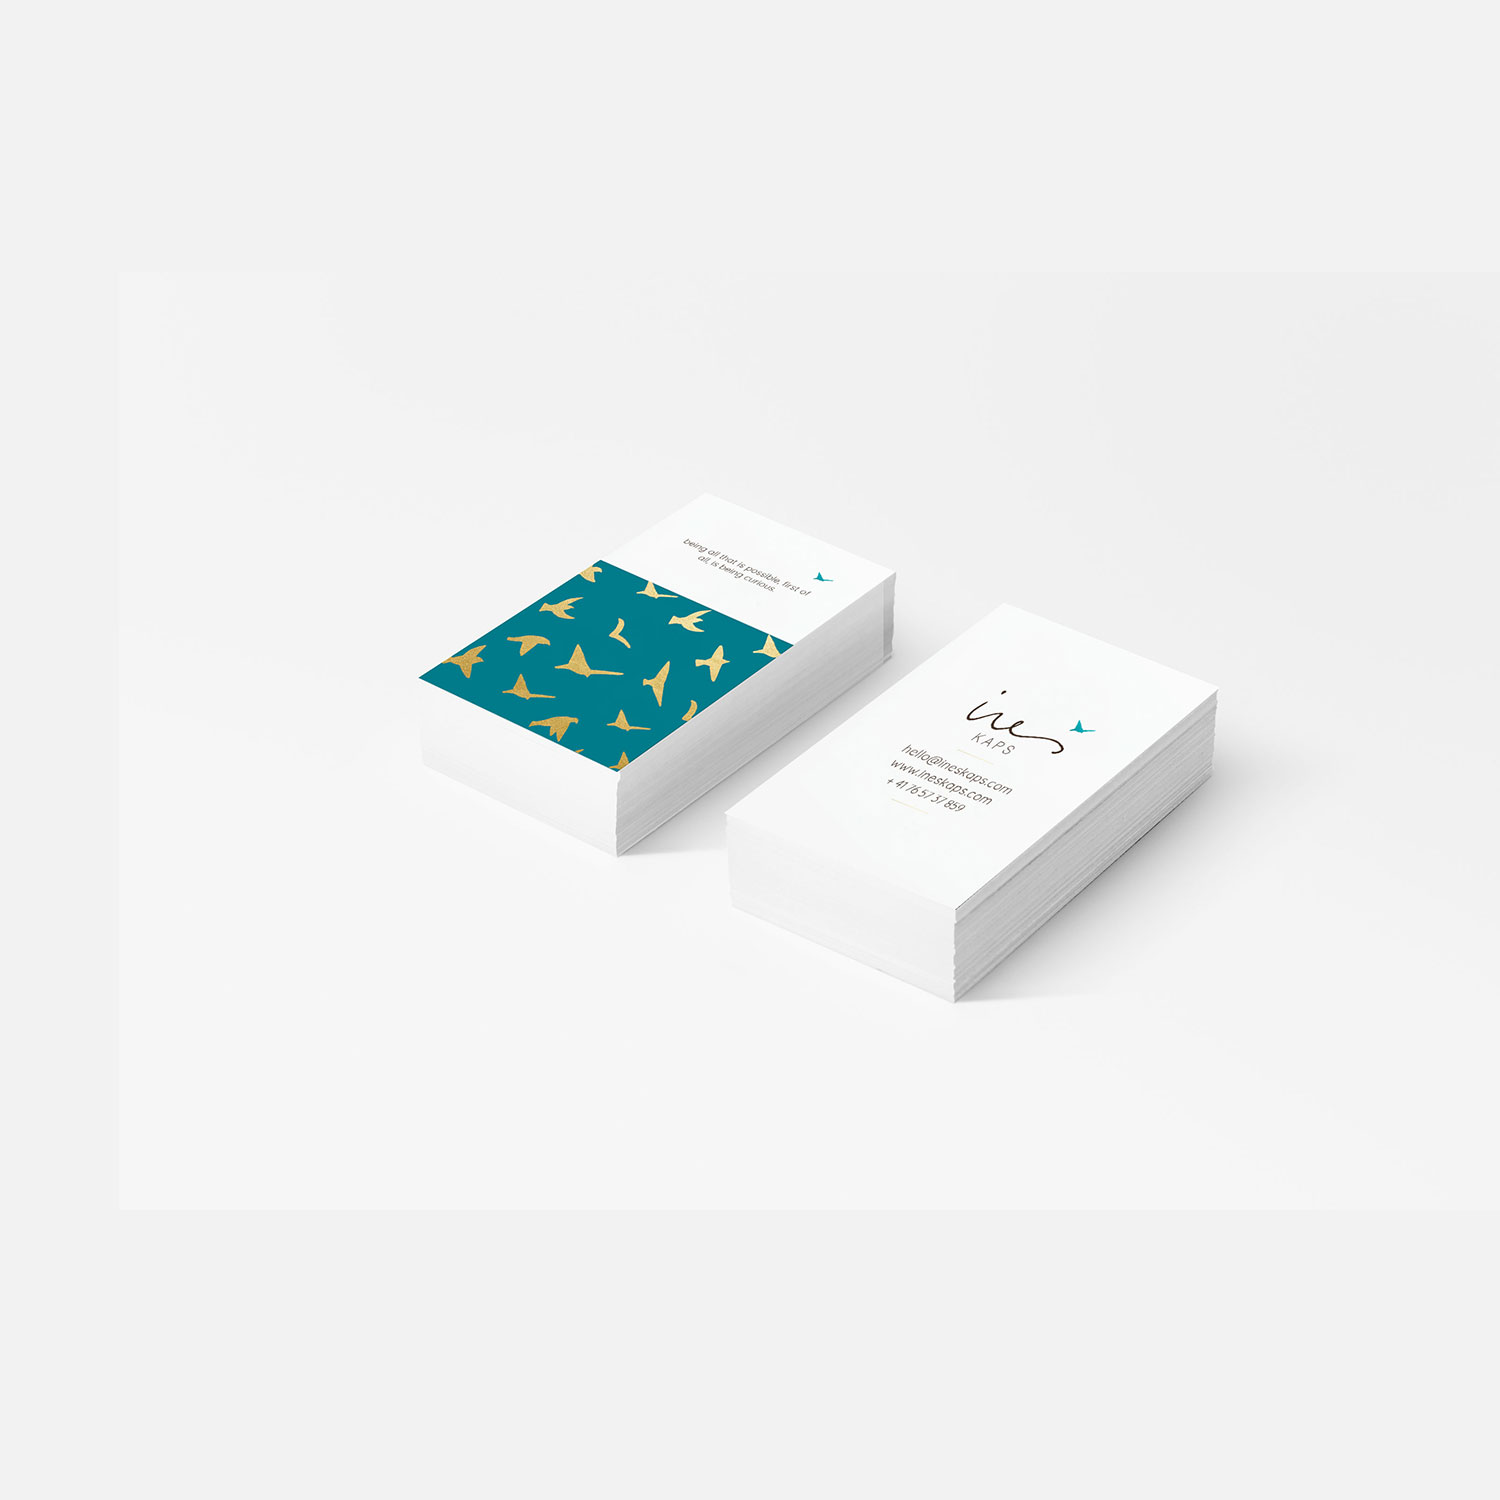 Ines Kaps business cards